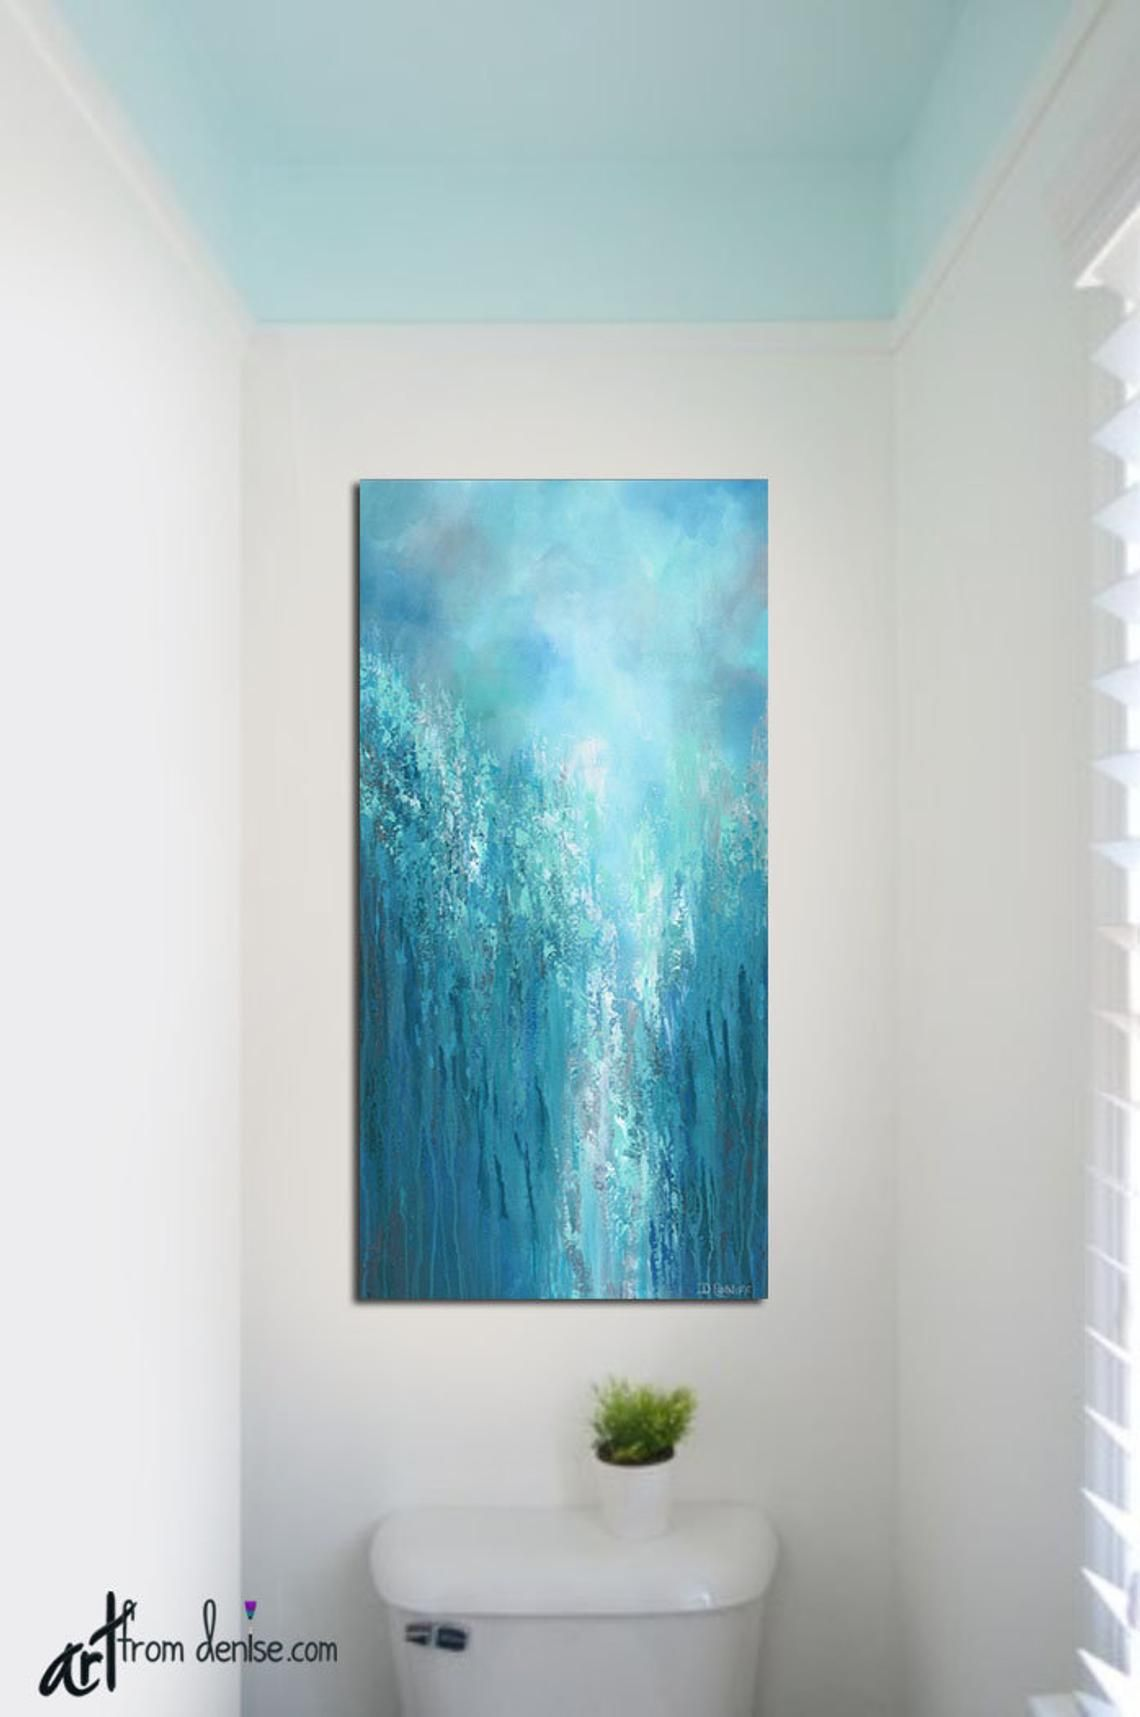 Blue And Gray Abstract Vertical Canvas Wall Art For Bathroom Or Home Decor Turquoise Aqua Bathroom Wall Art Canvas Wall Art Wall Canvas